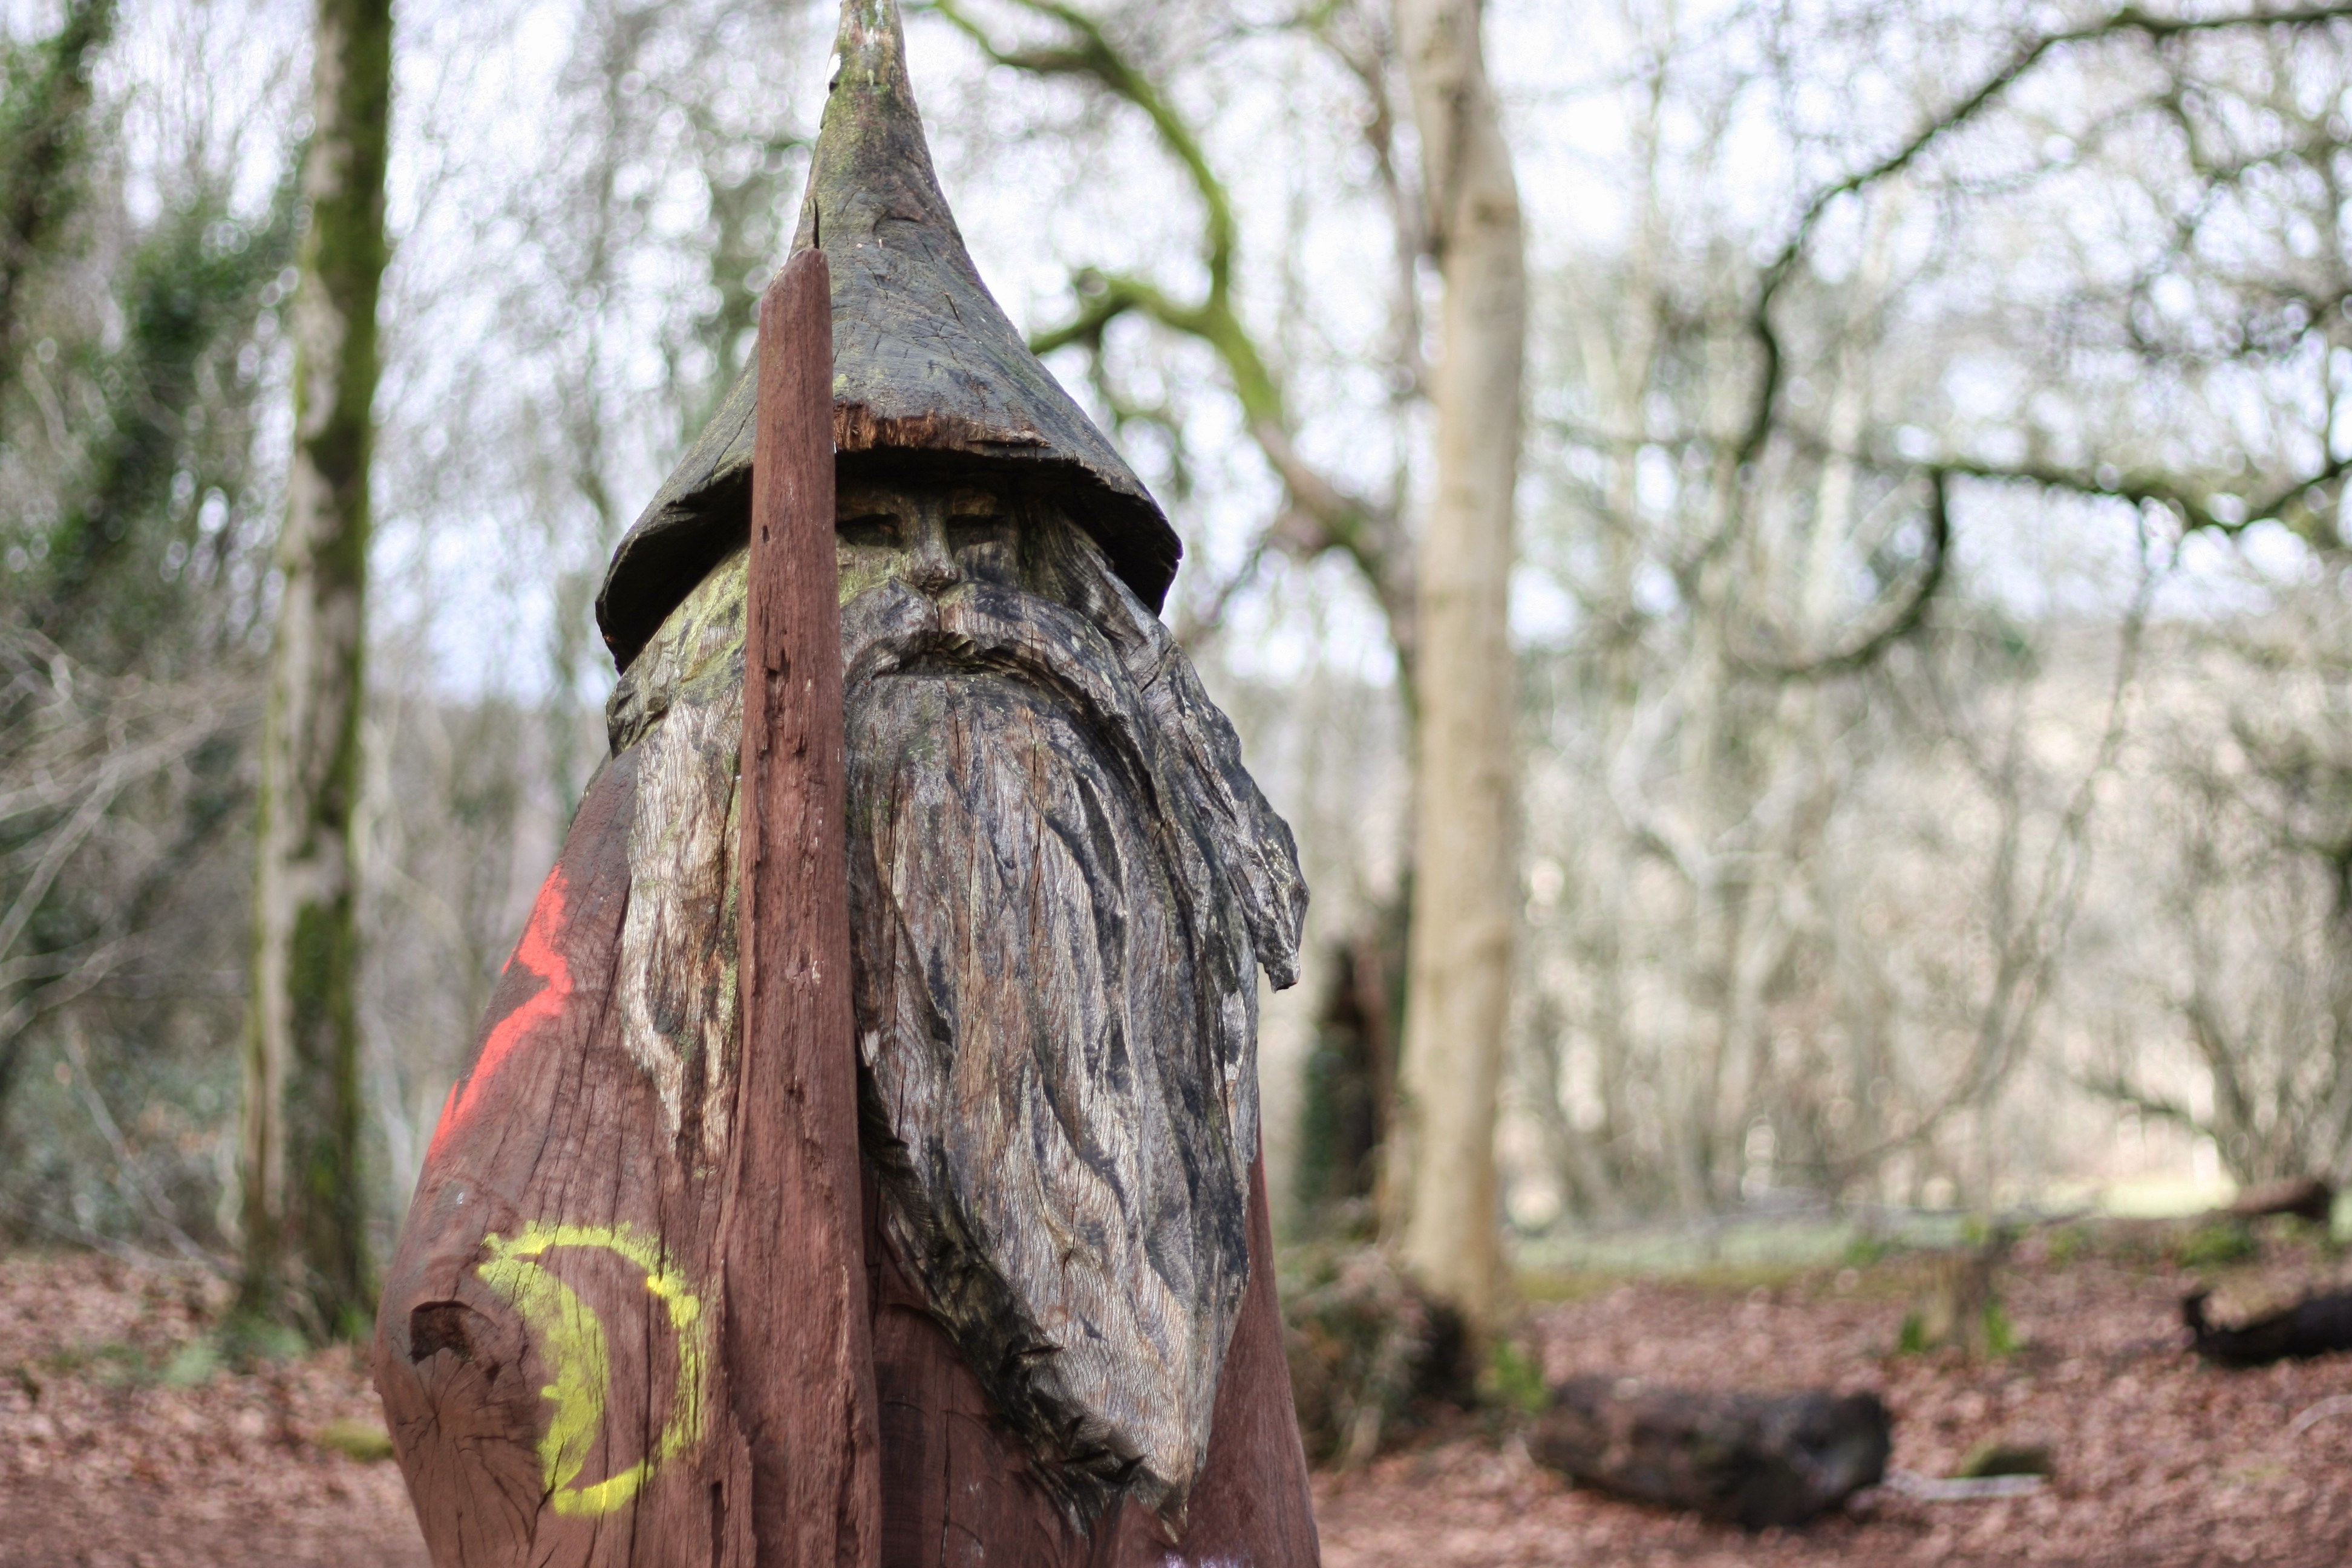 Sculpture trail wizard